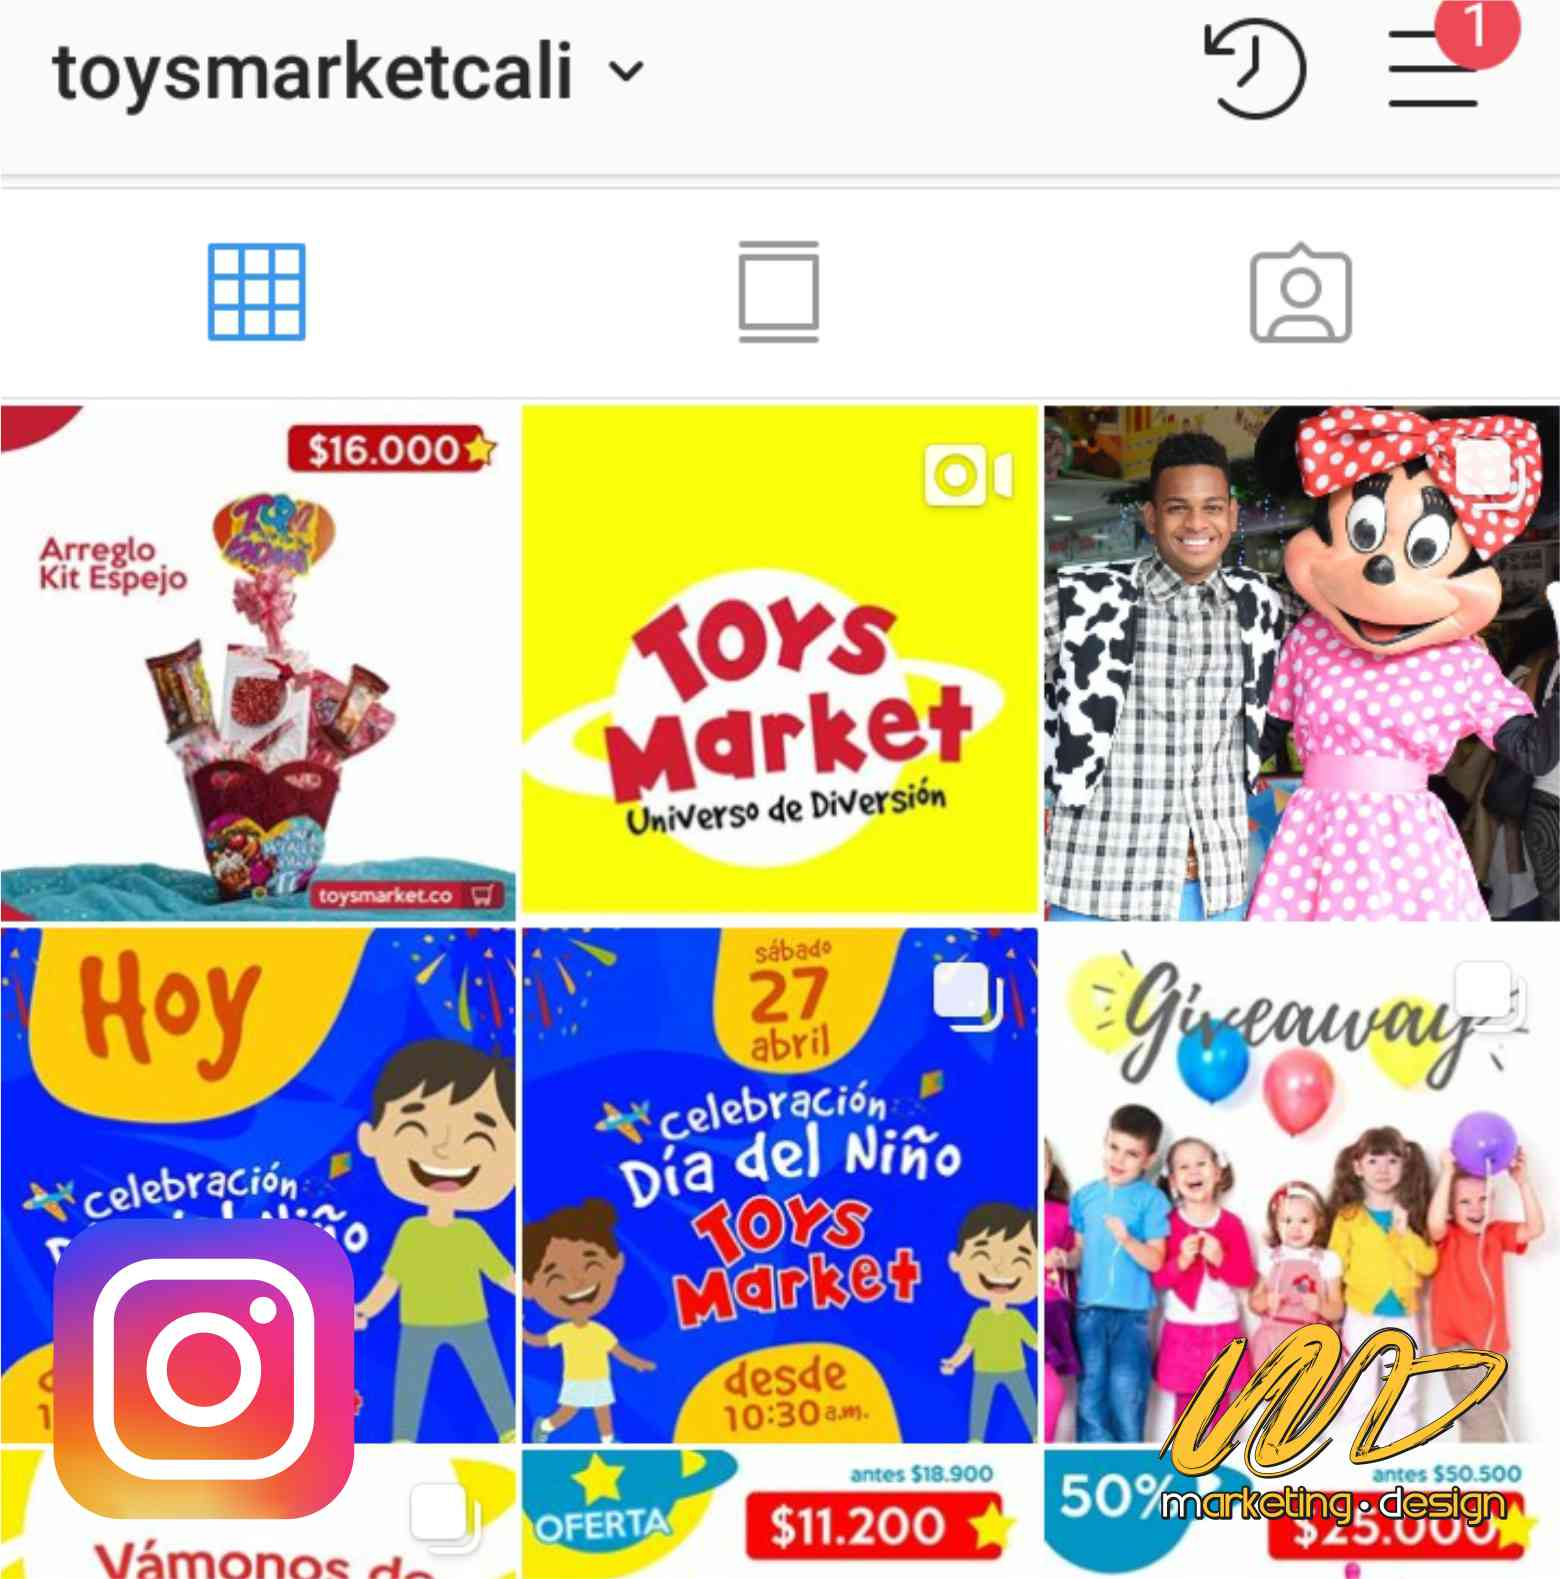 Clientes Instagram Marketing Design 1903